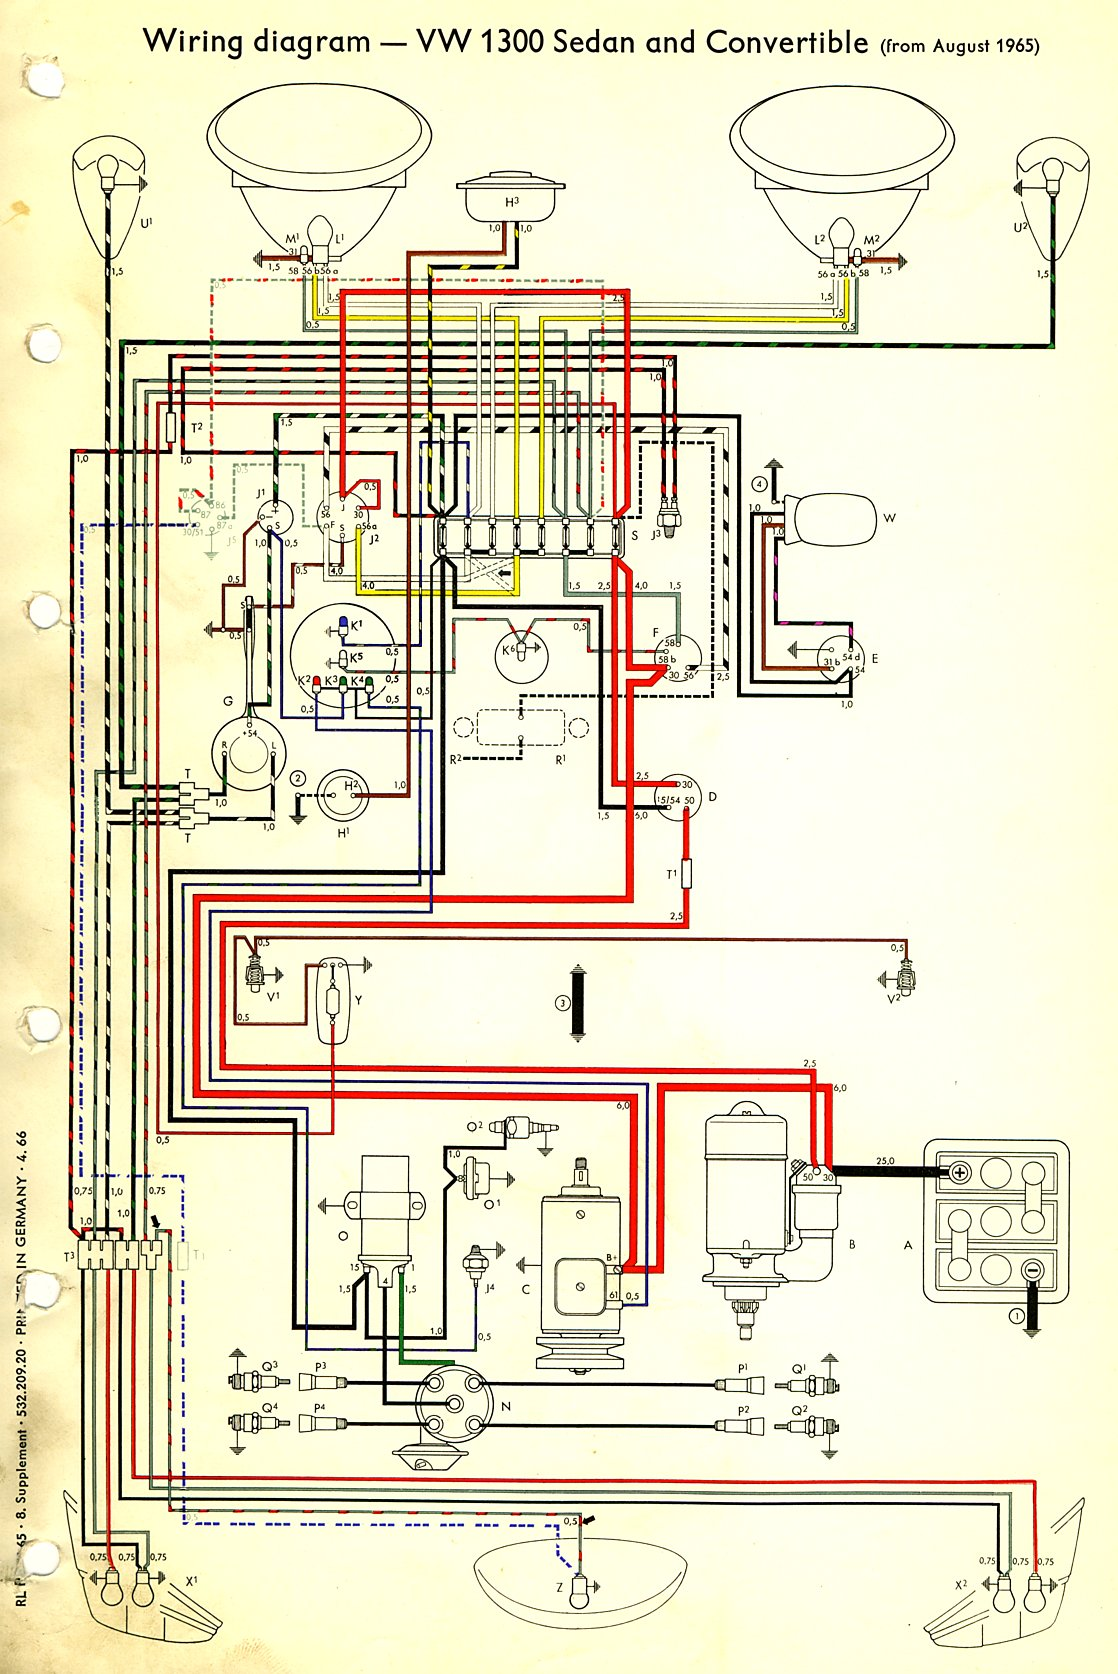 bug_66 1966 beetle wiring diagram thegoldenbug com 76 vw beetle wiring diagram at edmiracle.co